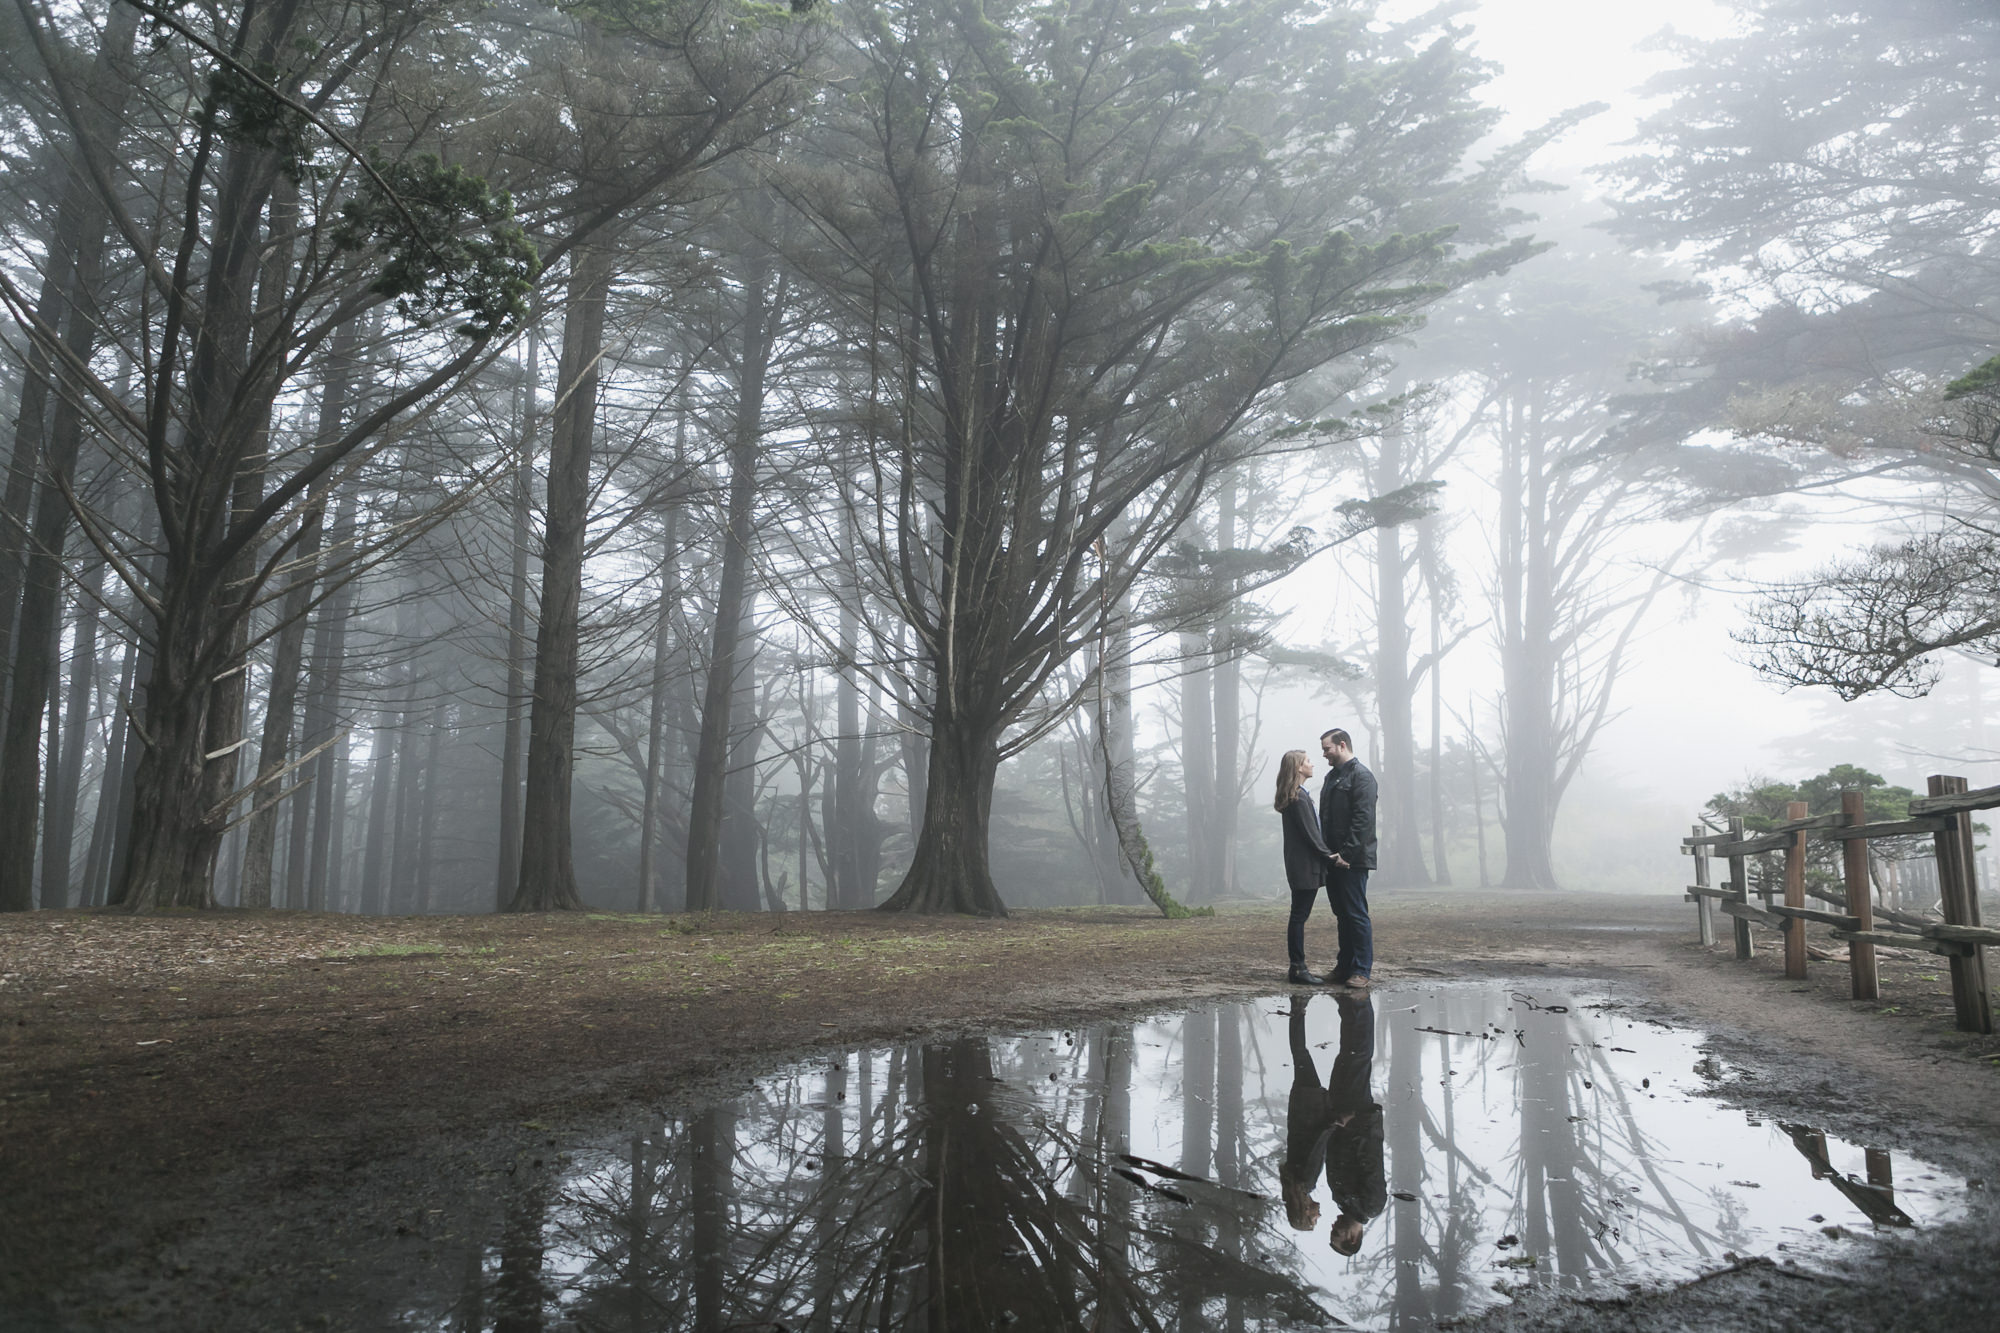 Couple are reflected in puddle in misty forest